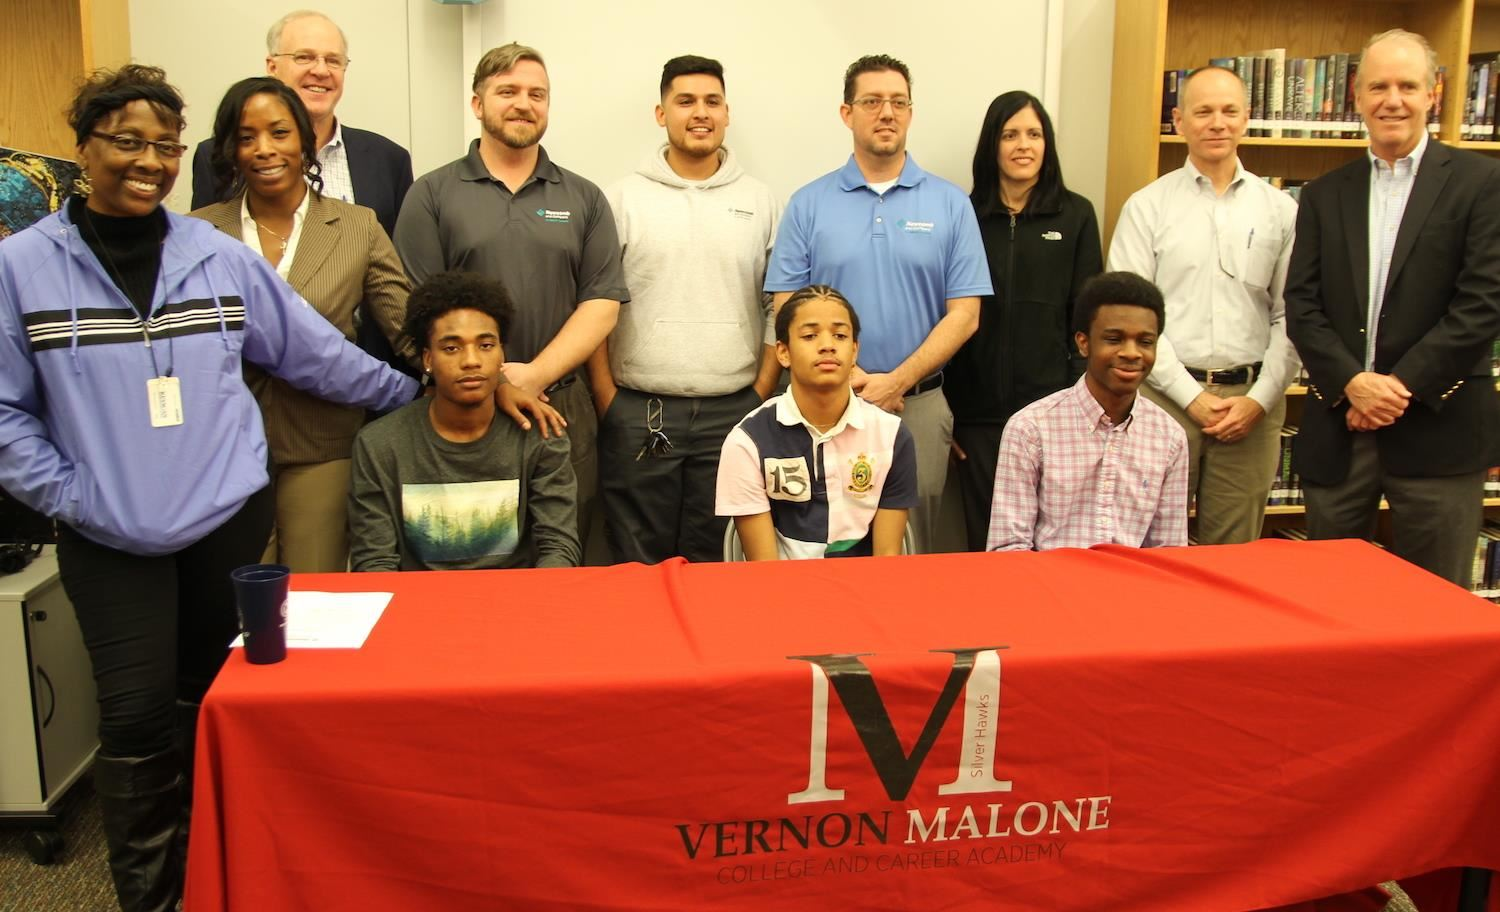 Vernon Malone College and Career Academy students signed on for well paying jobs after graduation